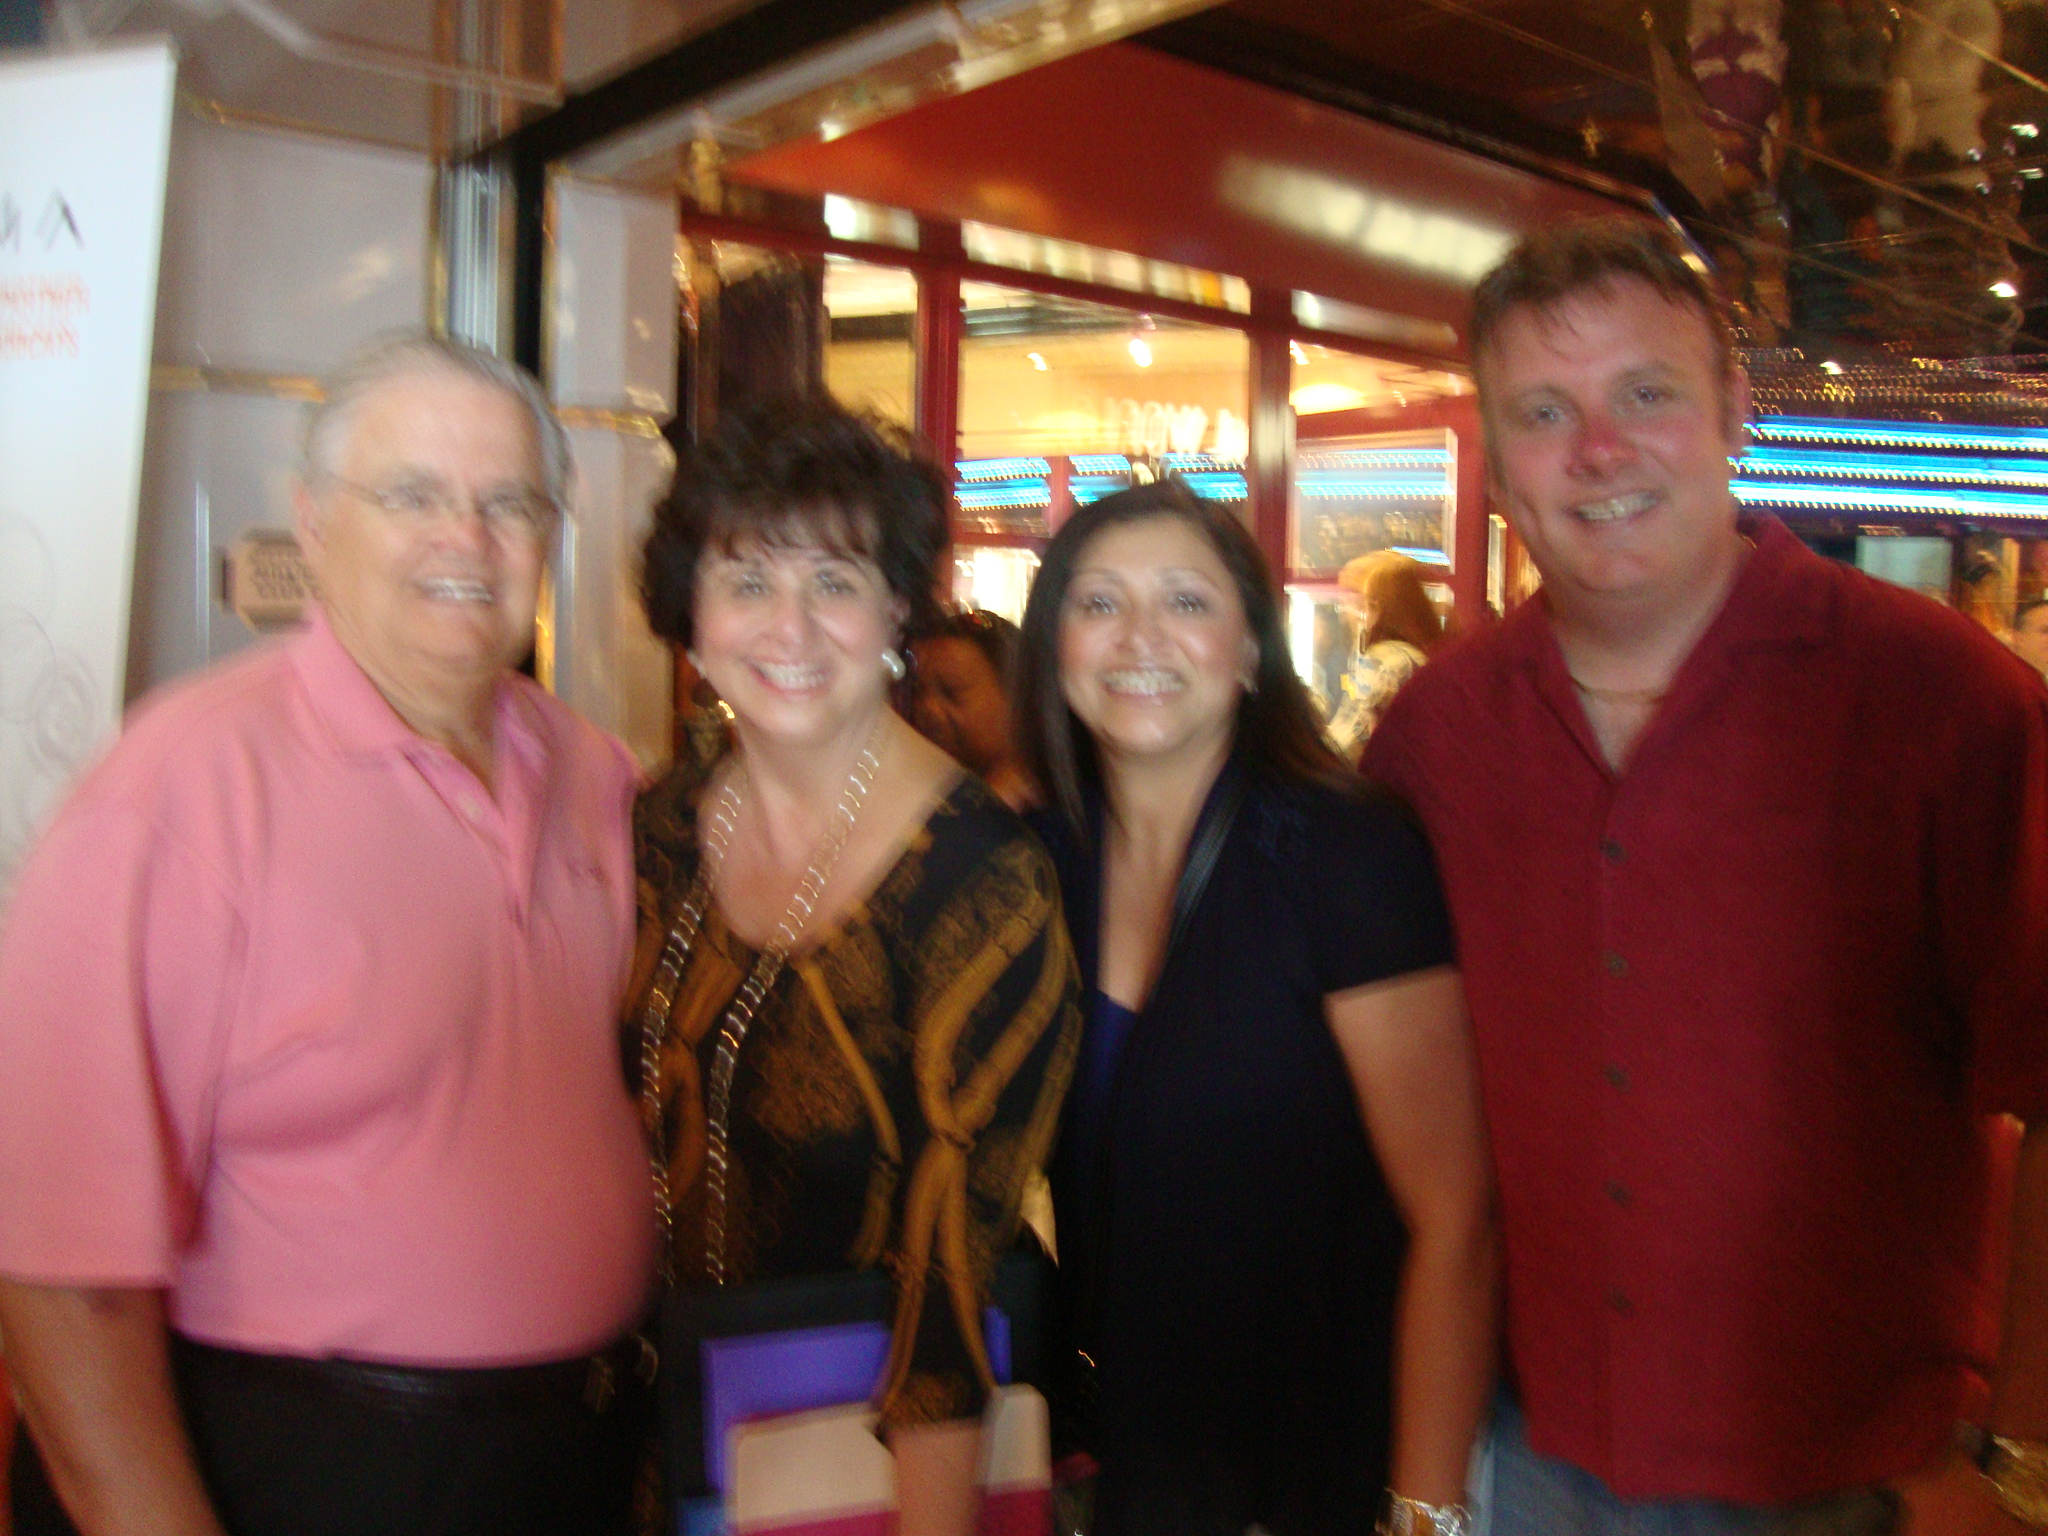 John Hagee First Wife Martha http://frankshelton.com/2011/10/2011/